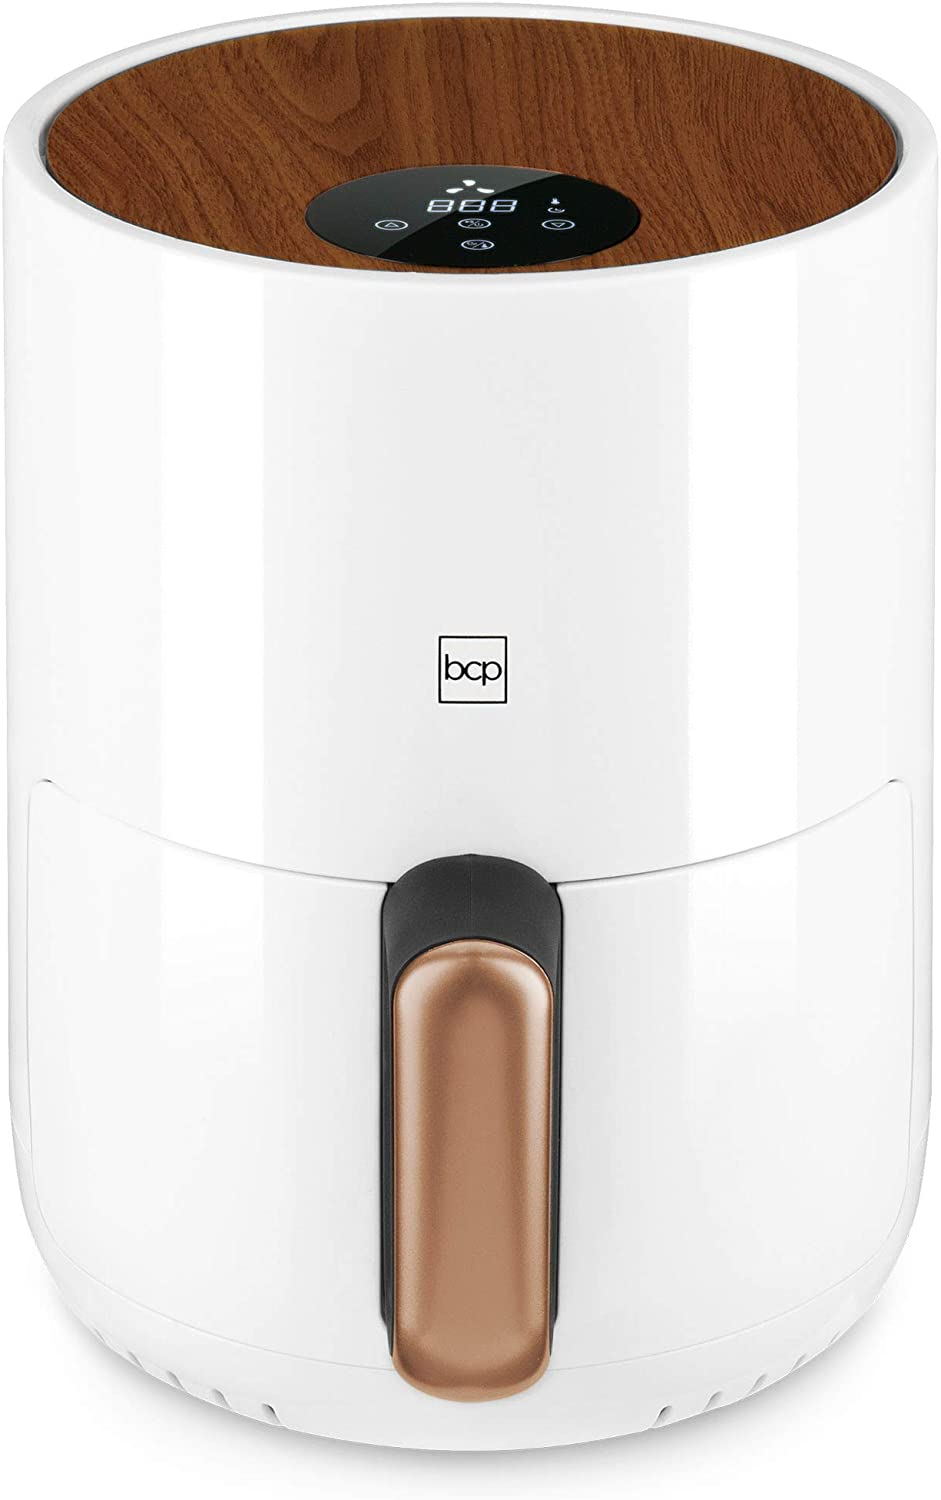 Best Choice Products 1.6qt 900W 120V Compact Air Fryer Kitchen Appliance w Digital LCD Screen, Recipes, Overheat Protection, Adjustable Temperature, Oil Filter Rack, White